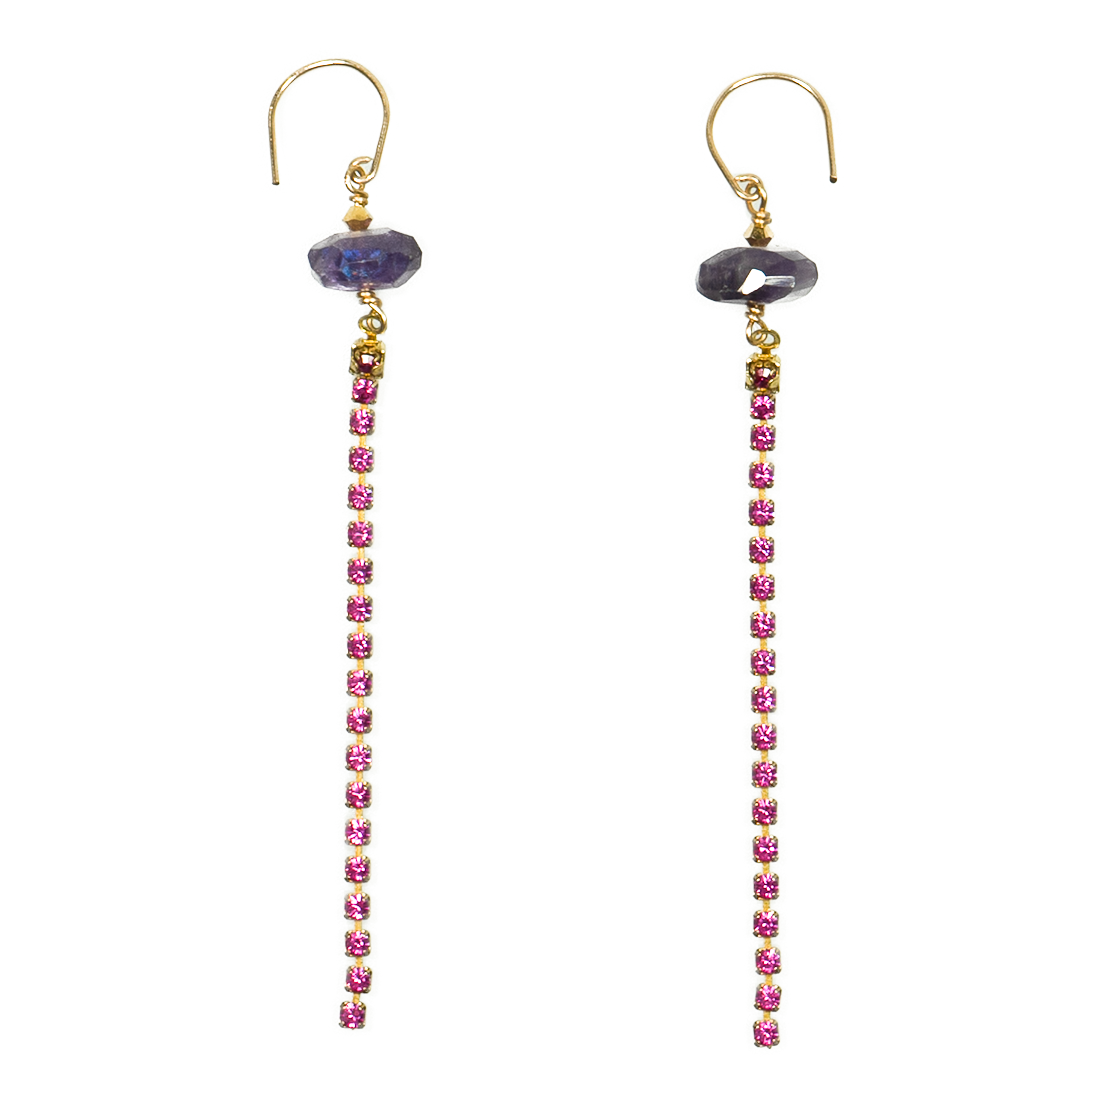 Amethyst and Vintage Crystal With 14k Gold Filled Hooks Earrings